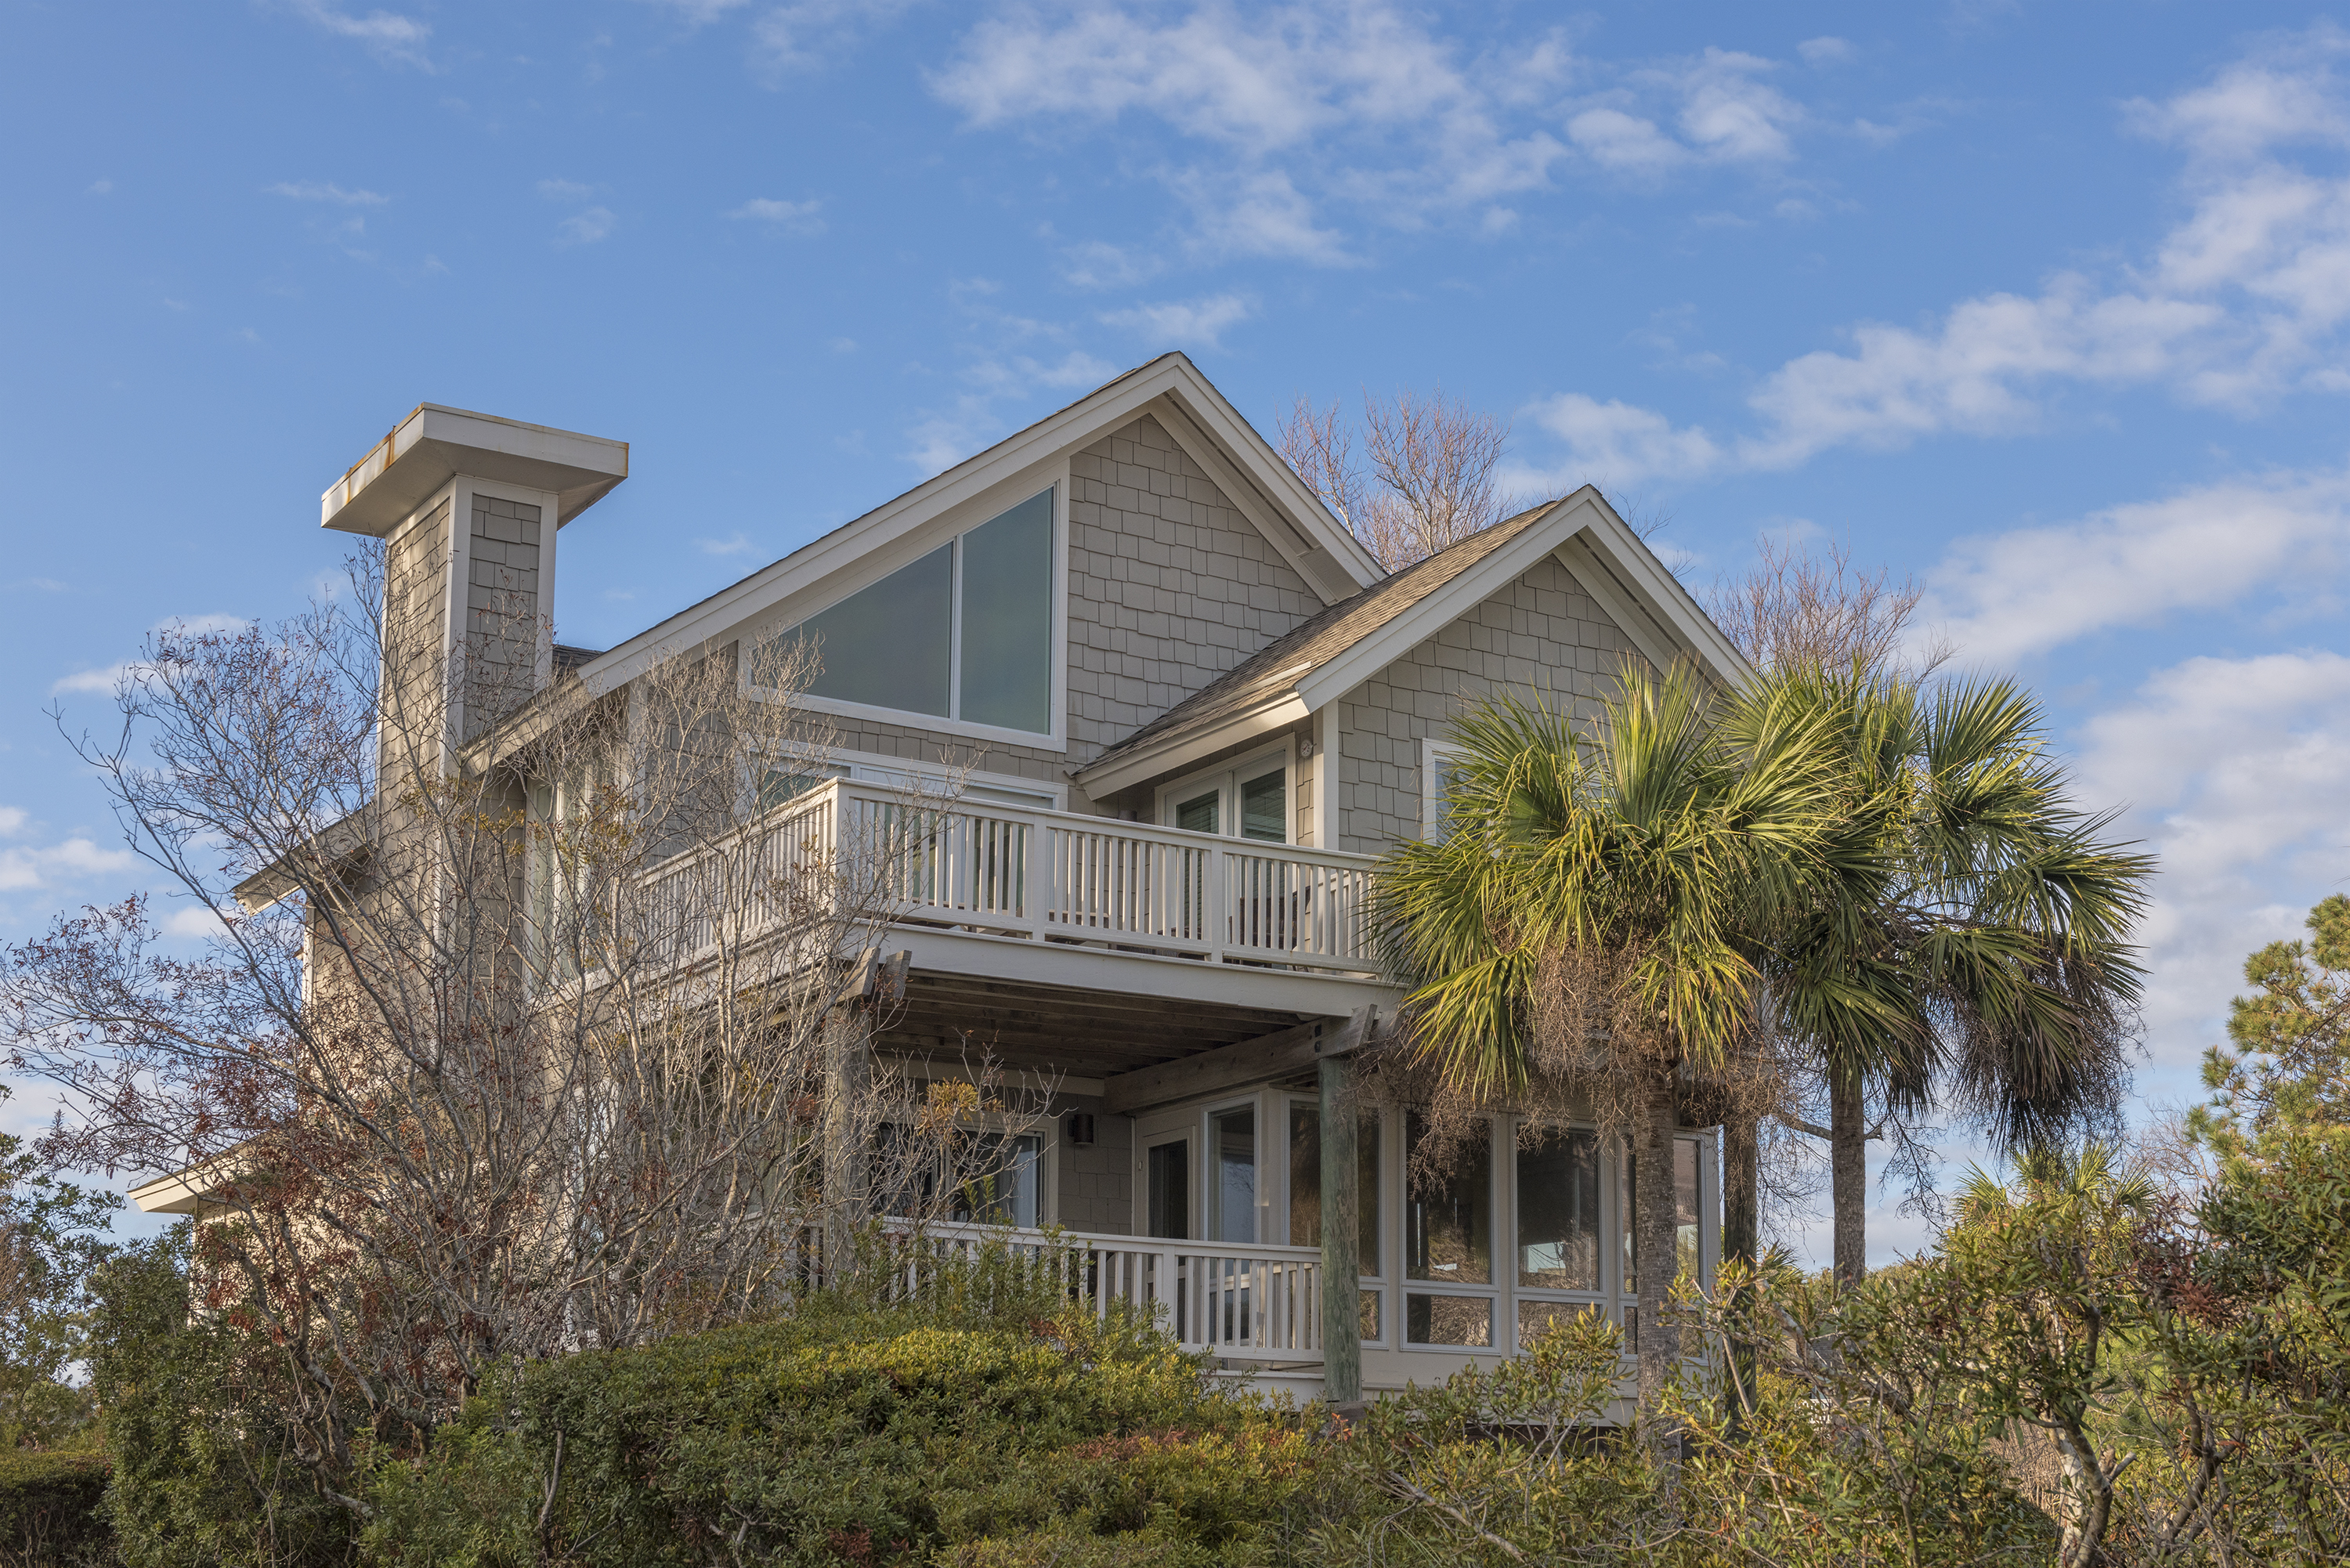 Enjoy the lower deck and upper deck off the back of the house.